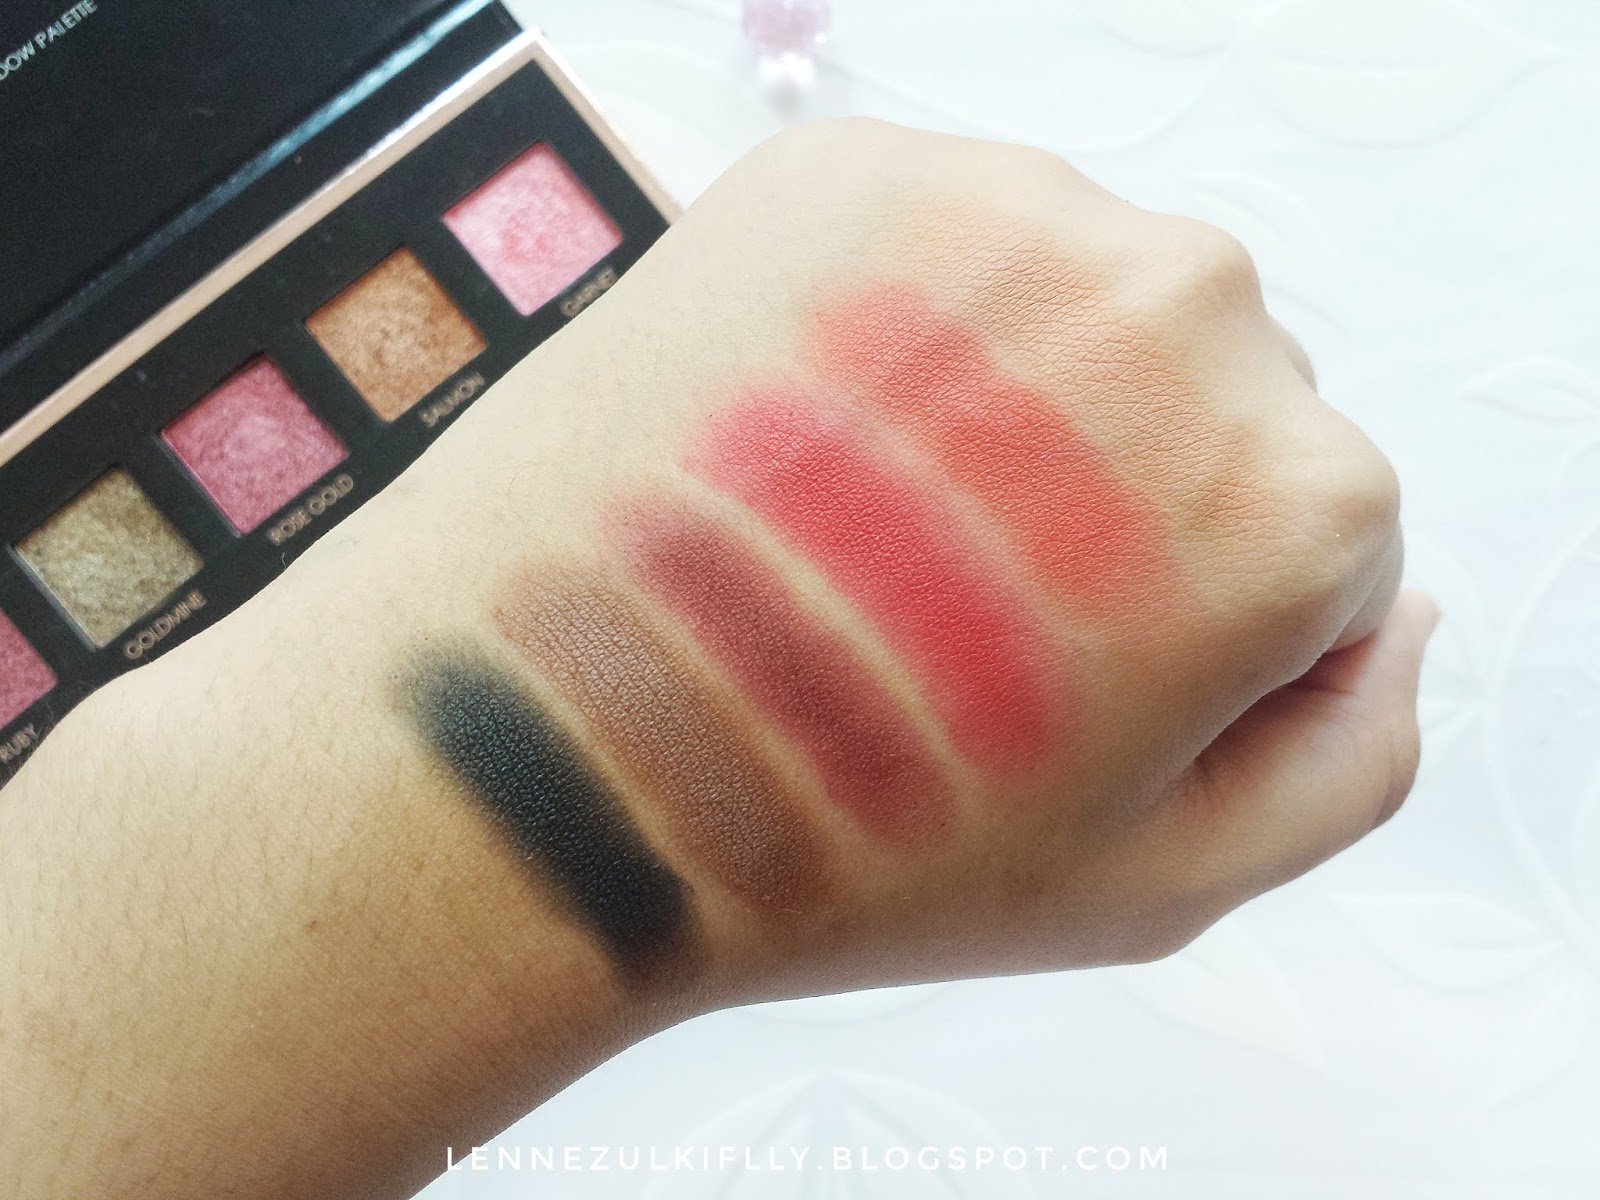 Focallure 18 Shades Full Function Palette in 01 Bright Lux | LENNE ZULKIFLLY